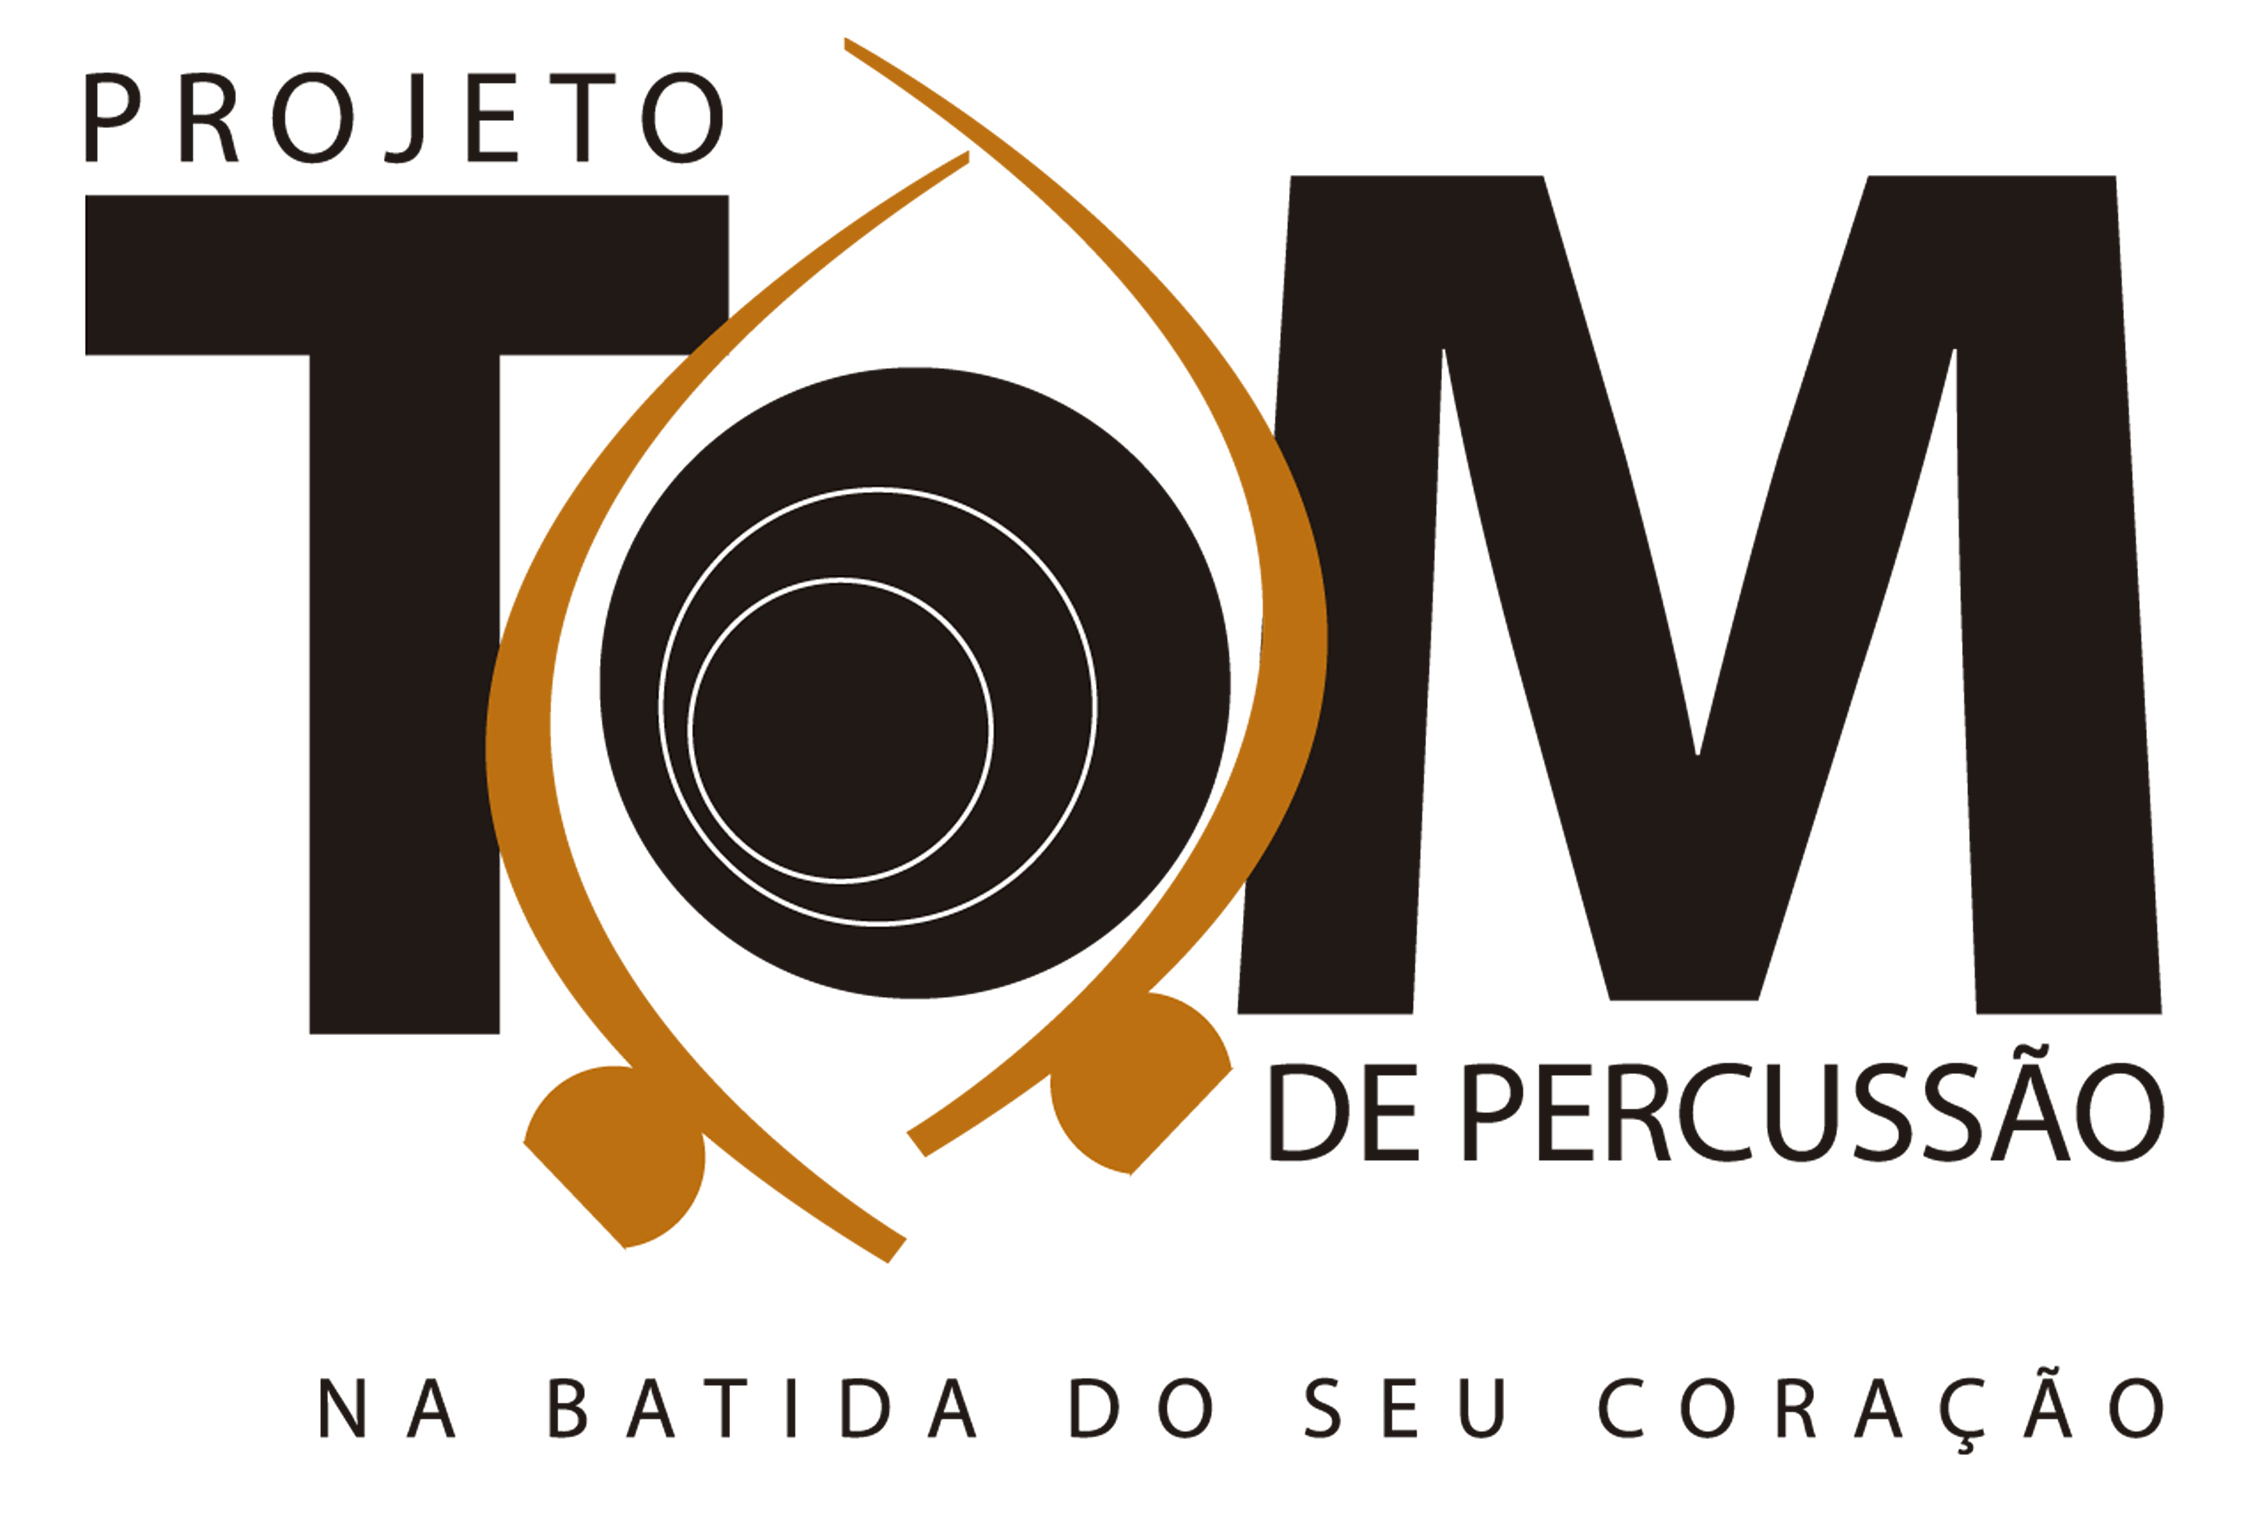 Tom de Percussao